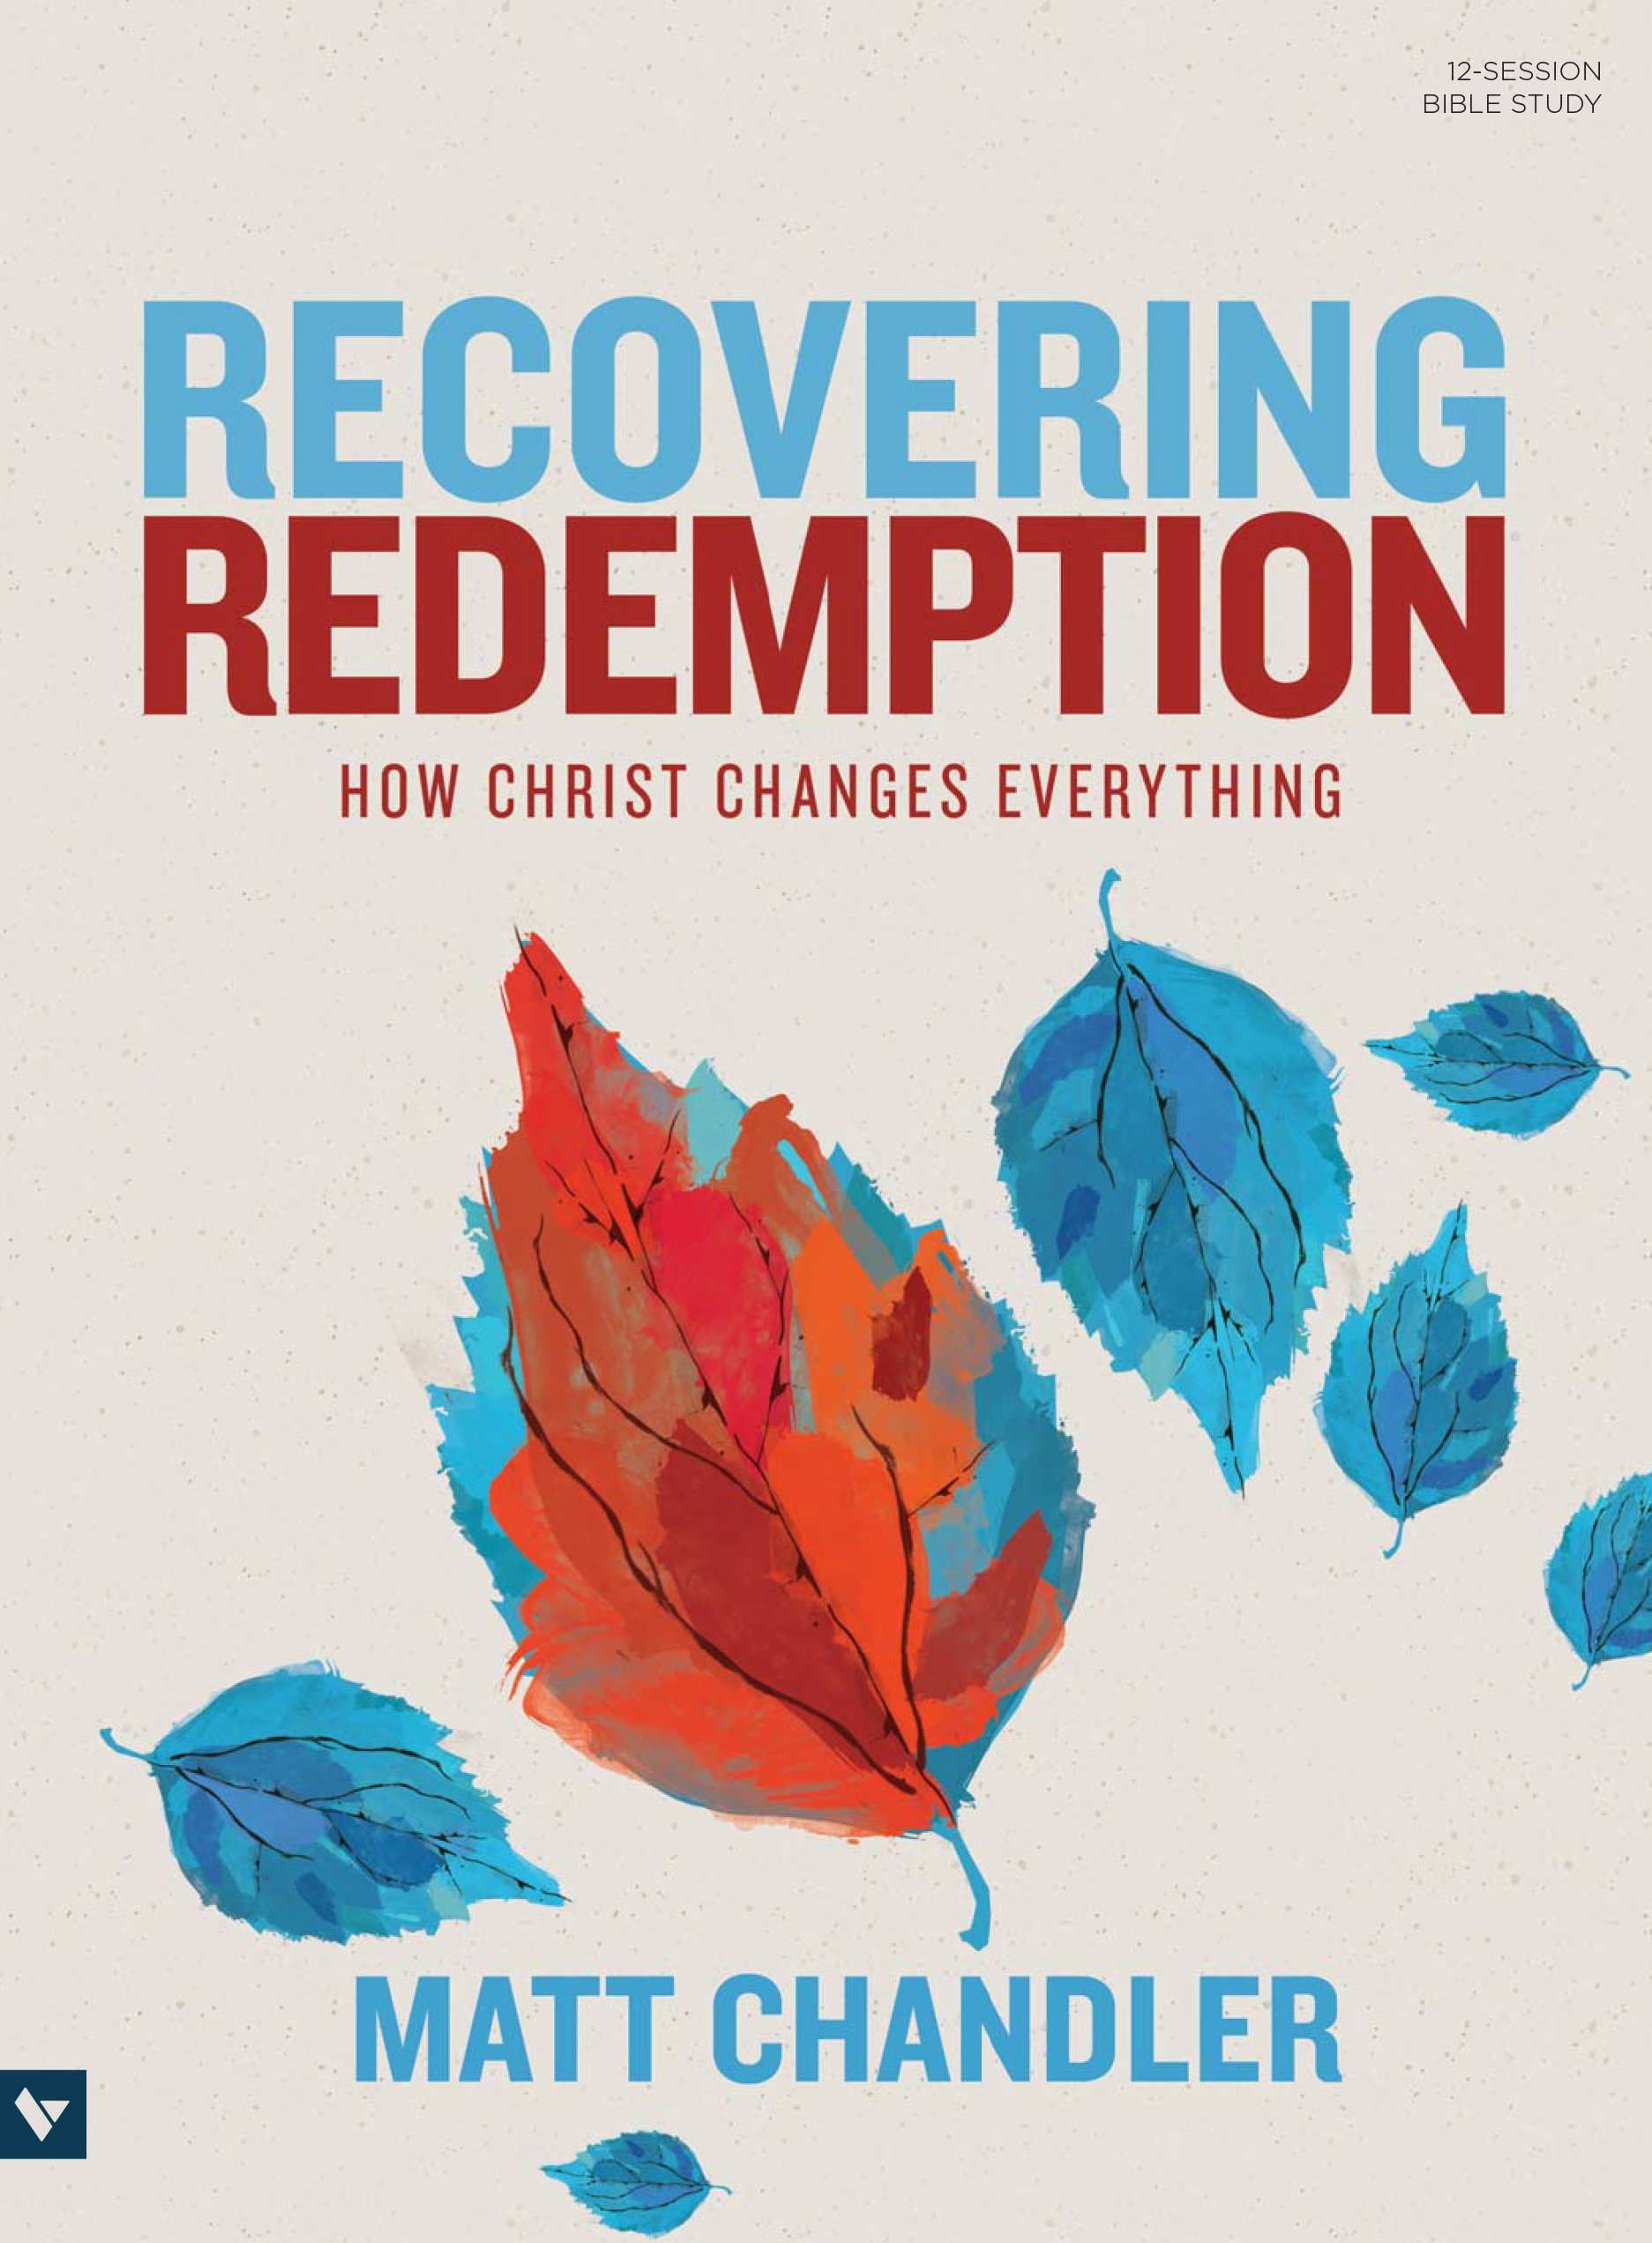 Recovering Redemption Bible Study Book: How Christ Changes Everything